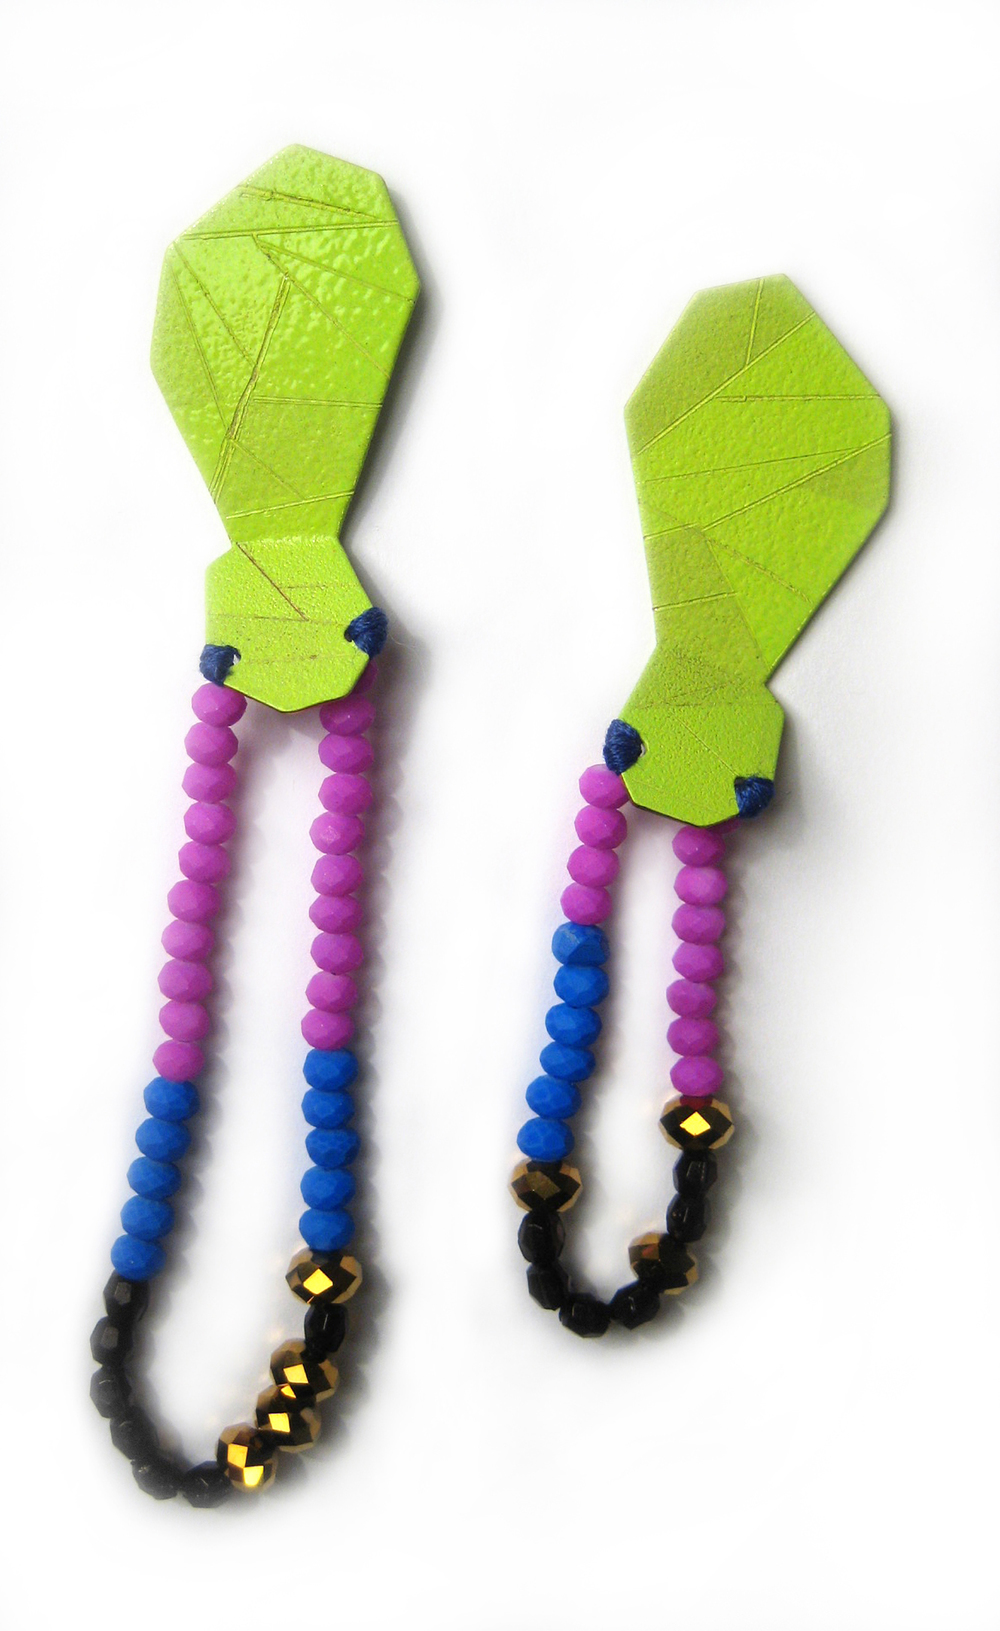 E2 Voegele, Stephanie lime green geometric shape on top, blue, purple, black & gold beads.jpg